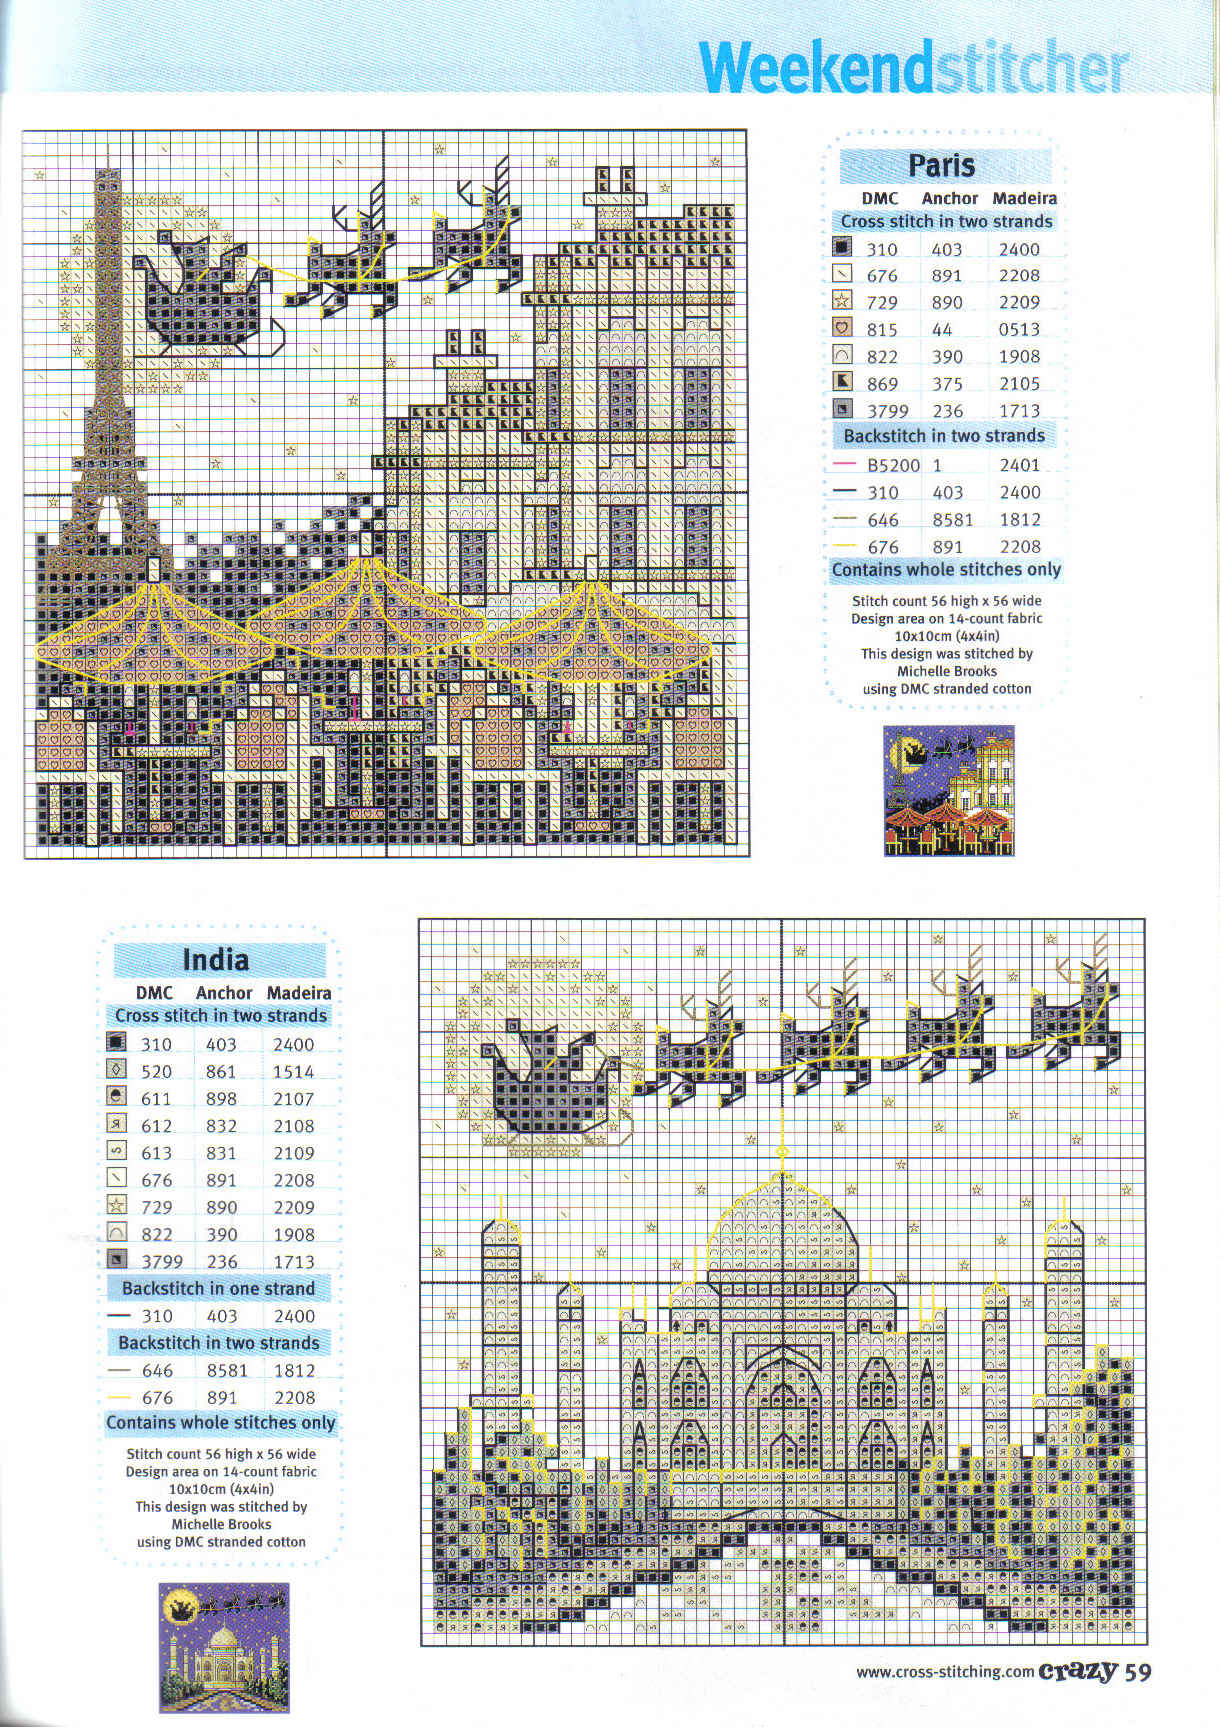 http://make-handmade.com/wp-content/uploads/2011/12/christmas-crafts-santa-s-sleigh-ride-cross-stitch-kits-make-handmade-4a0ef938d342f.jpg